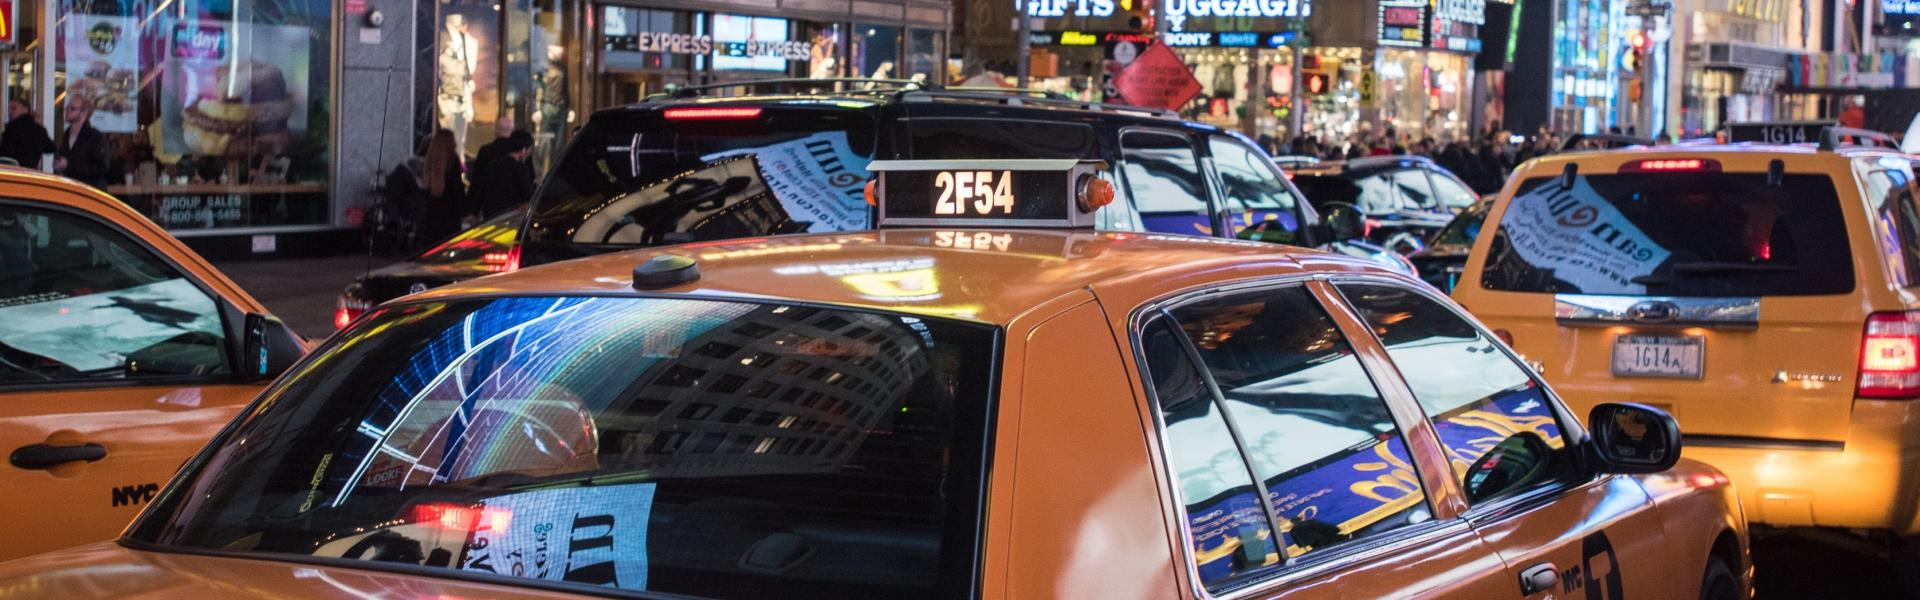 Taxi, Times Square, Midtown, Manhattan